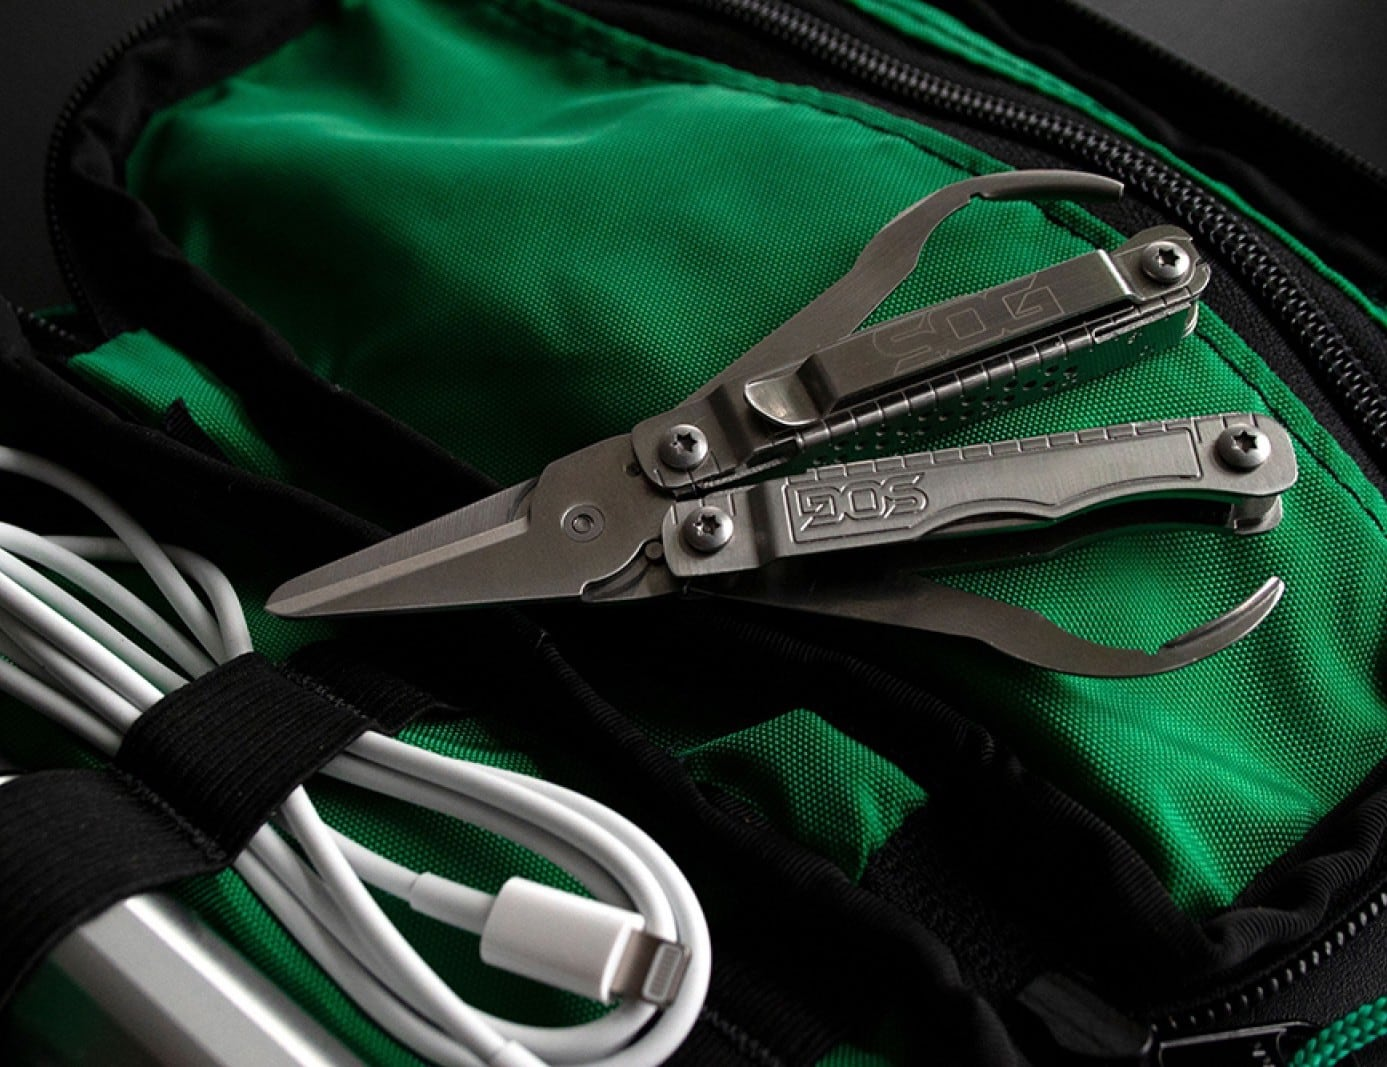 SOG Snippet Keychain Multi-Tool comes with nine useful tools